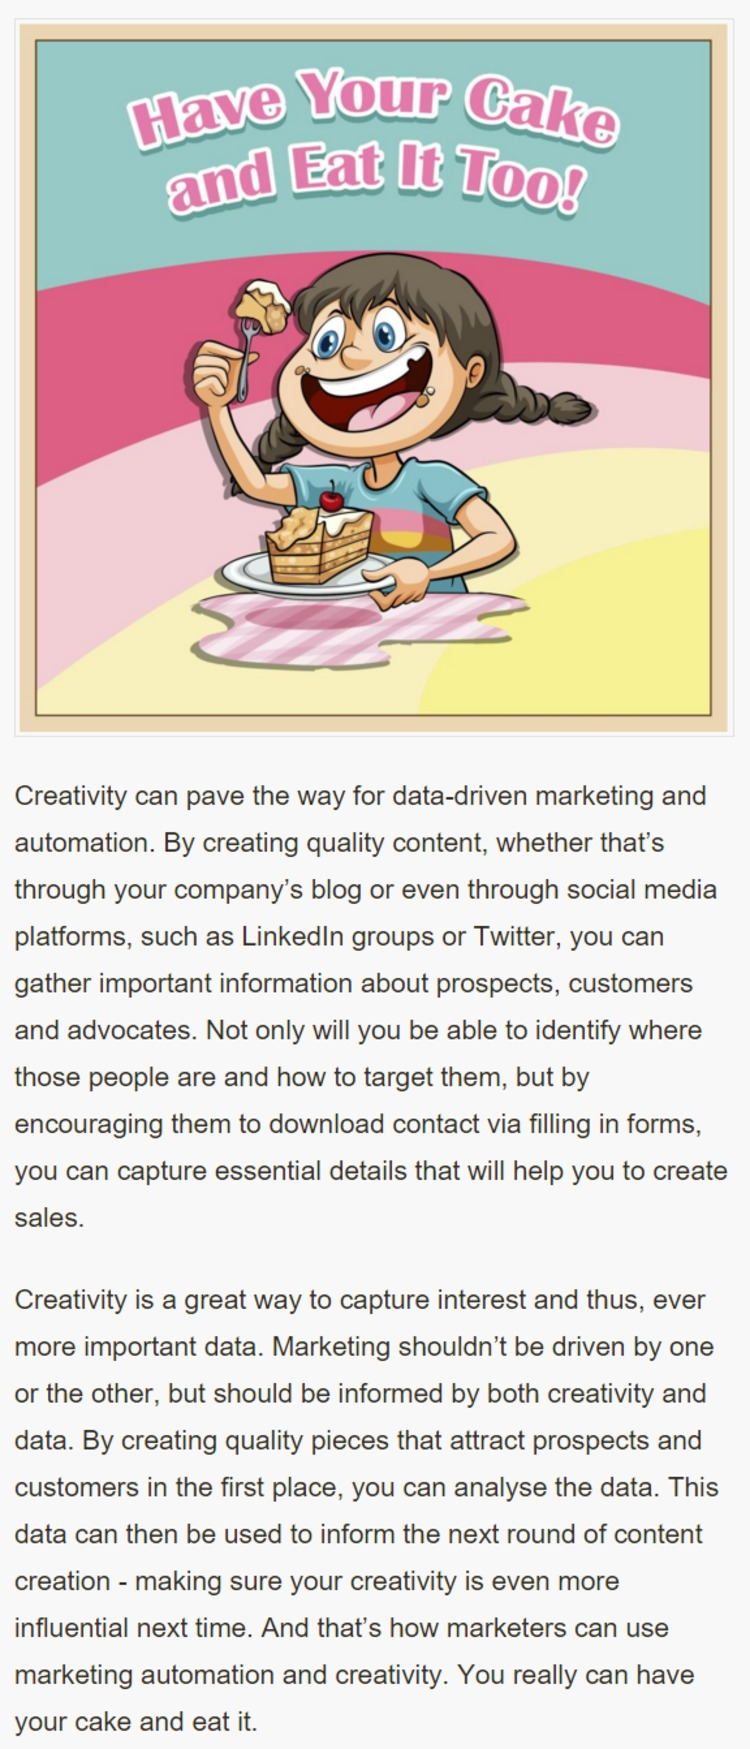 Marketing Automation and Creativity: How to Have Your Cake and Eat It, Too - Oracle | The Marketing Technology Alert | Scoop.it